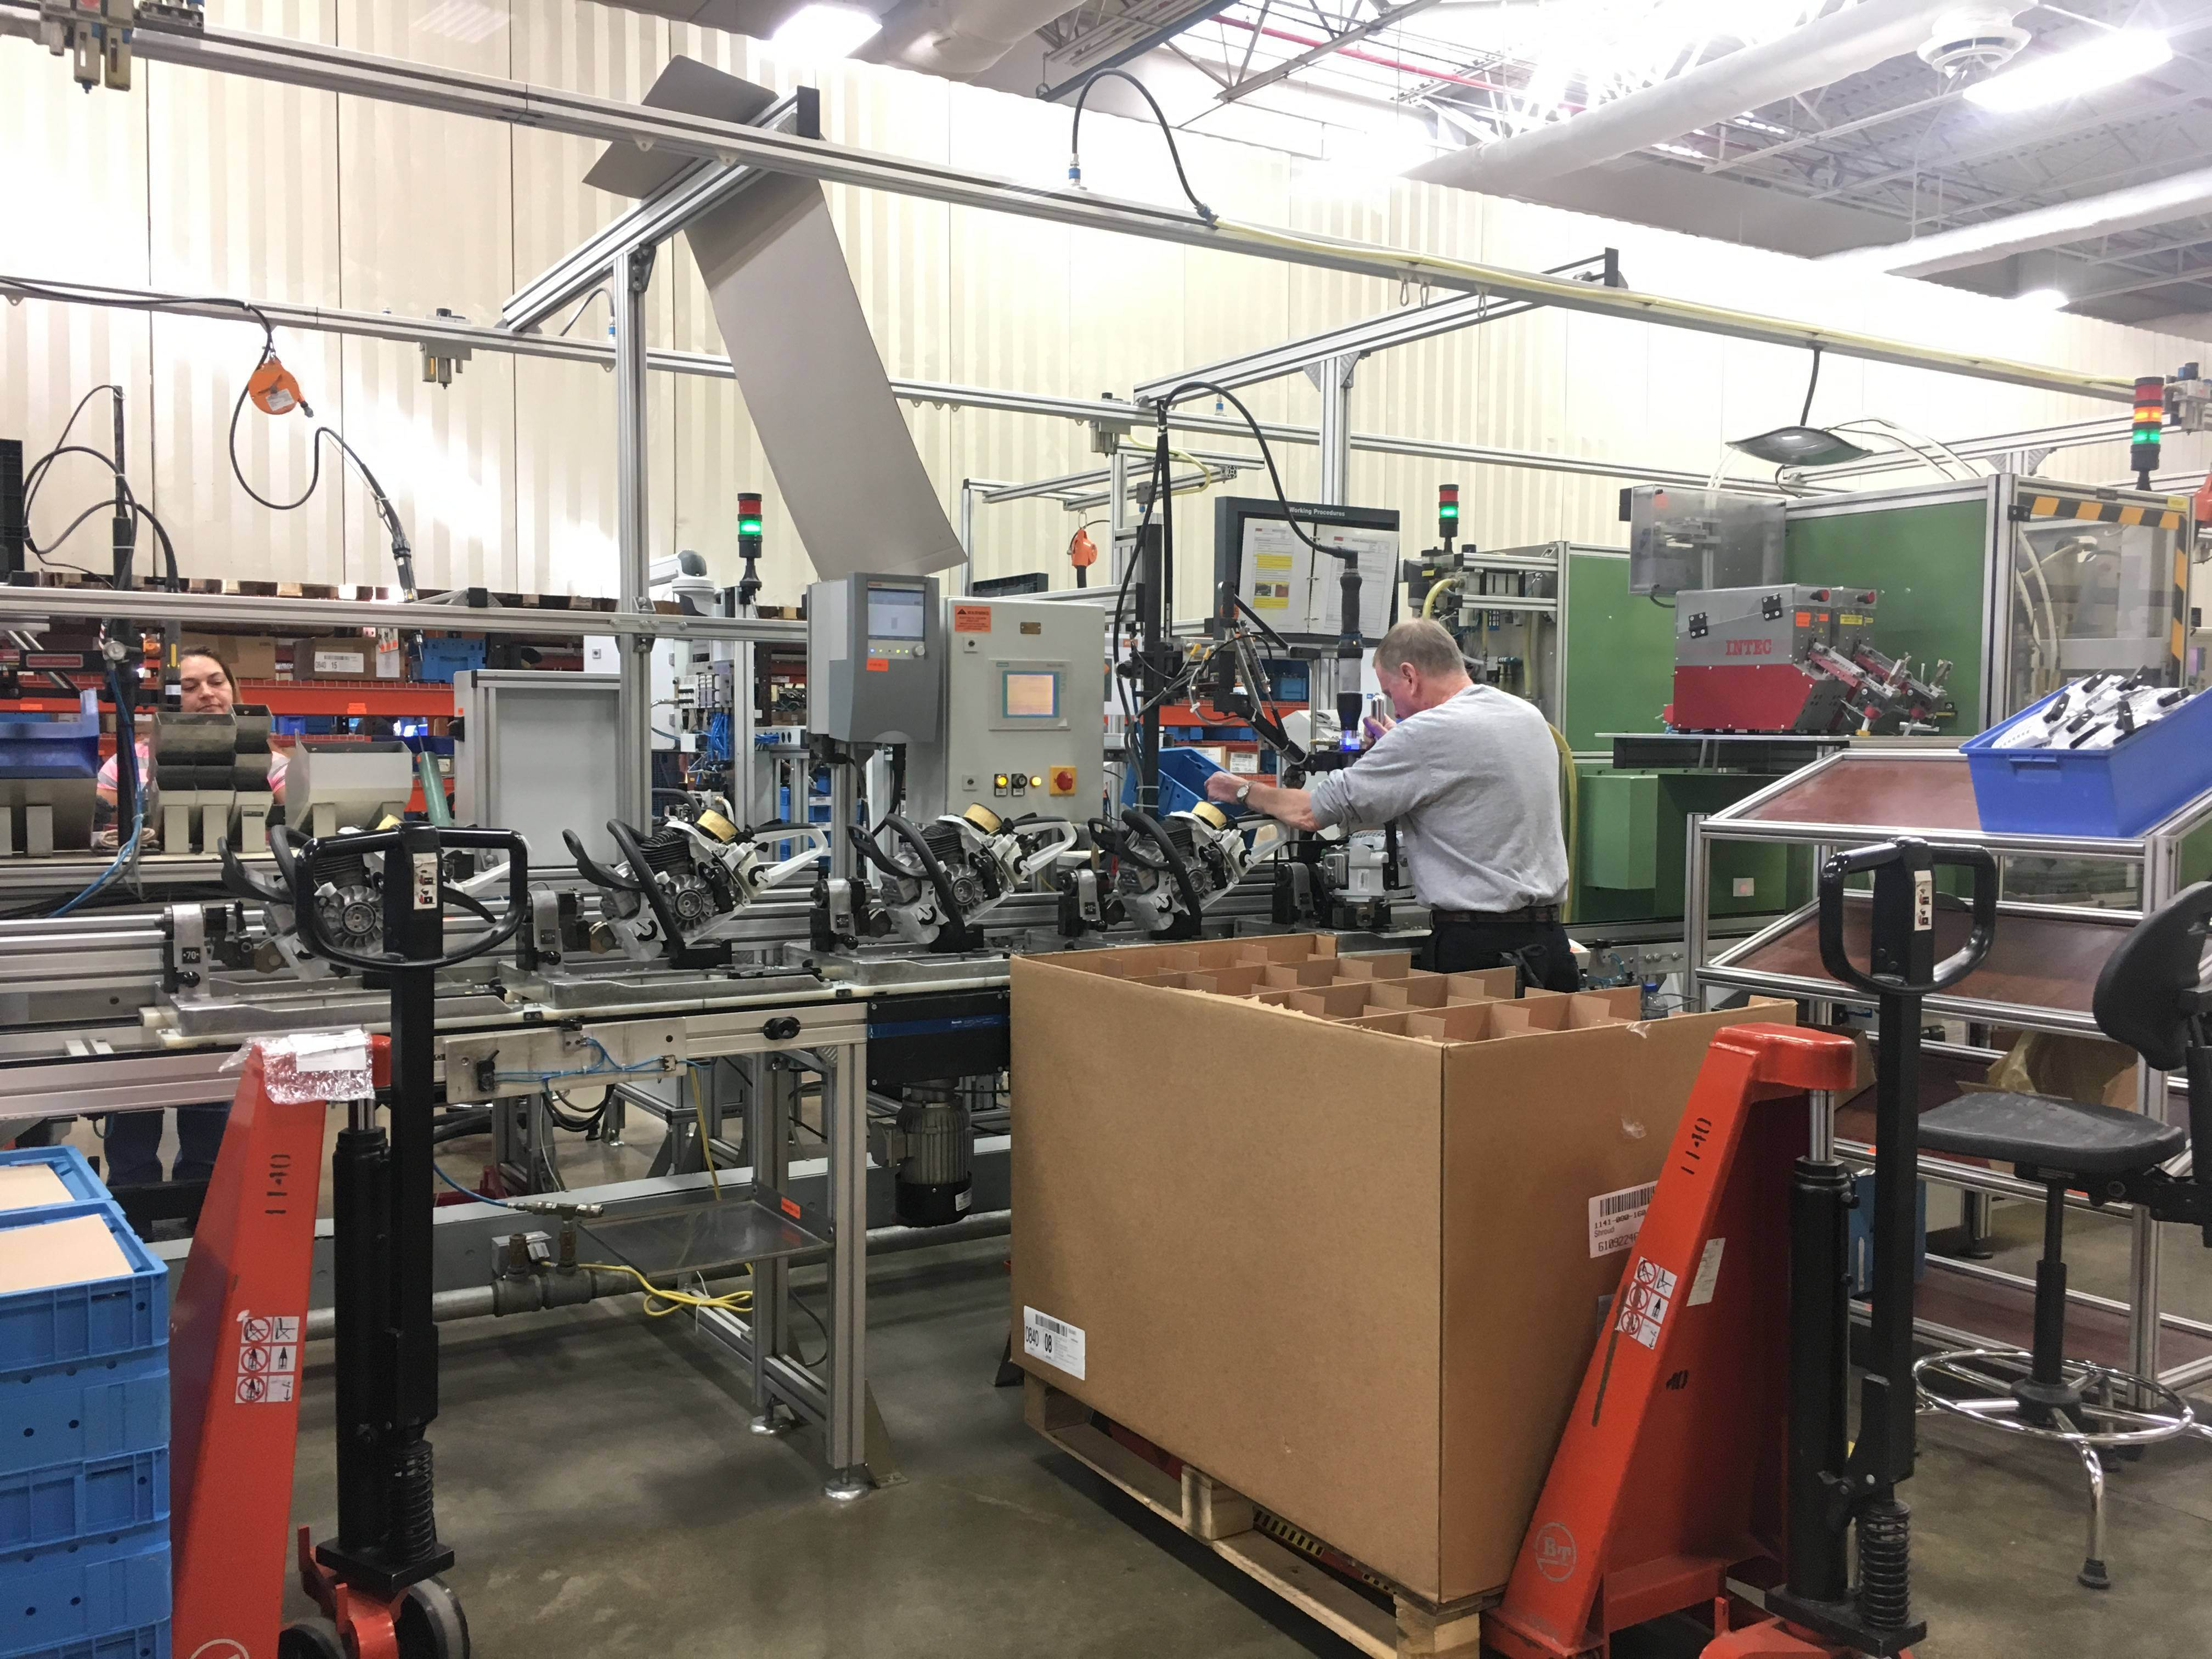 Behind the scenes at Stihl's Virginia Beach plant